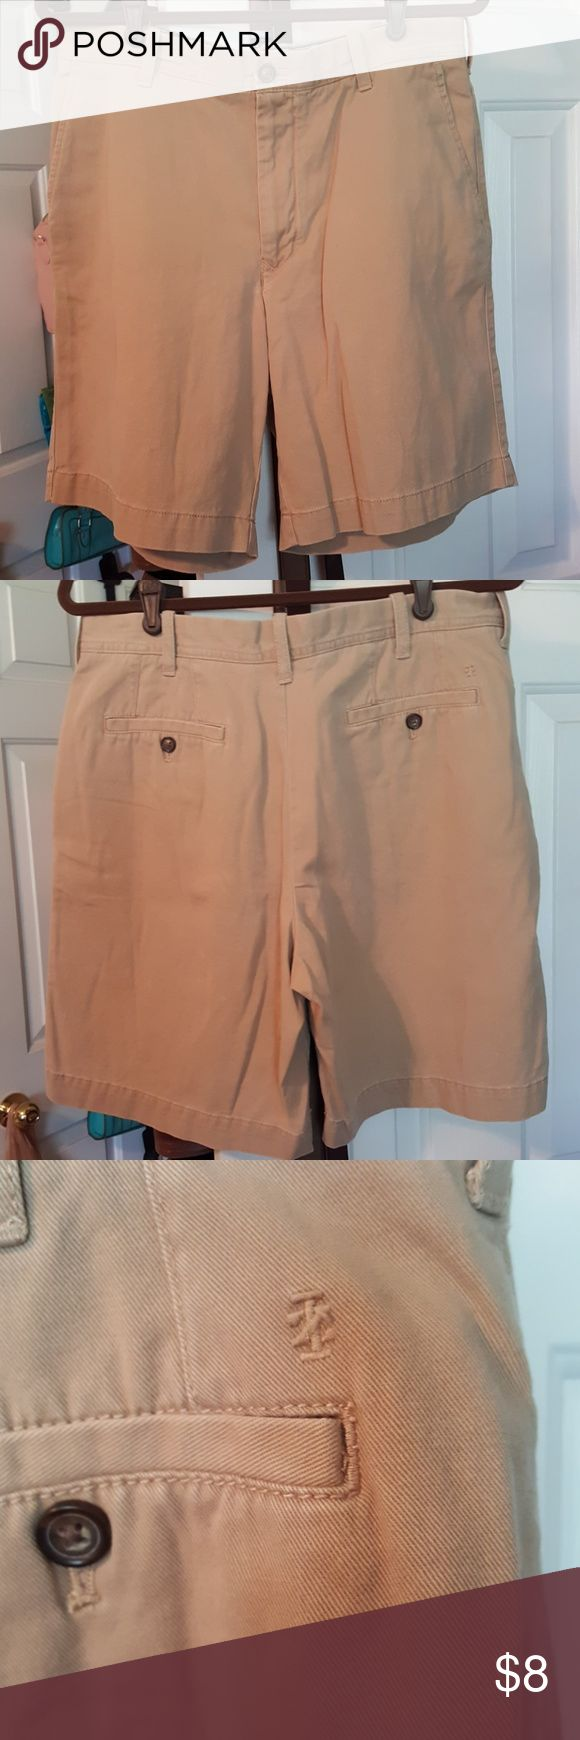 Men's khaki shorts,  sz 34. These Izod shorts are in great condition.  Size 34, 34 100% cotton, ready to be lived in. Navy gingham detail on inside of waist. Izod Shorts Flat Front